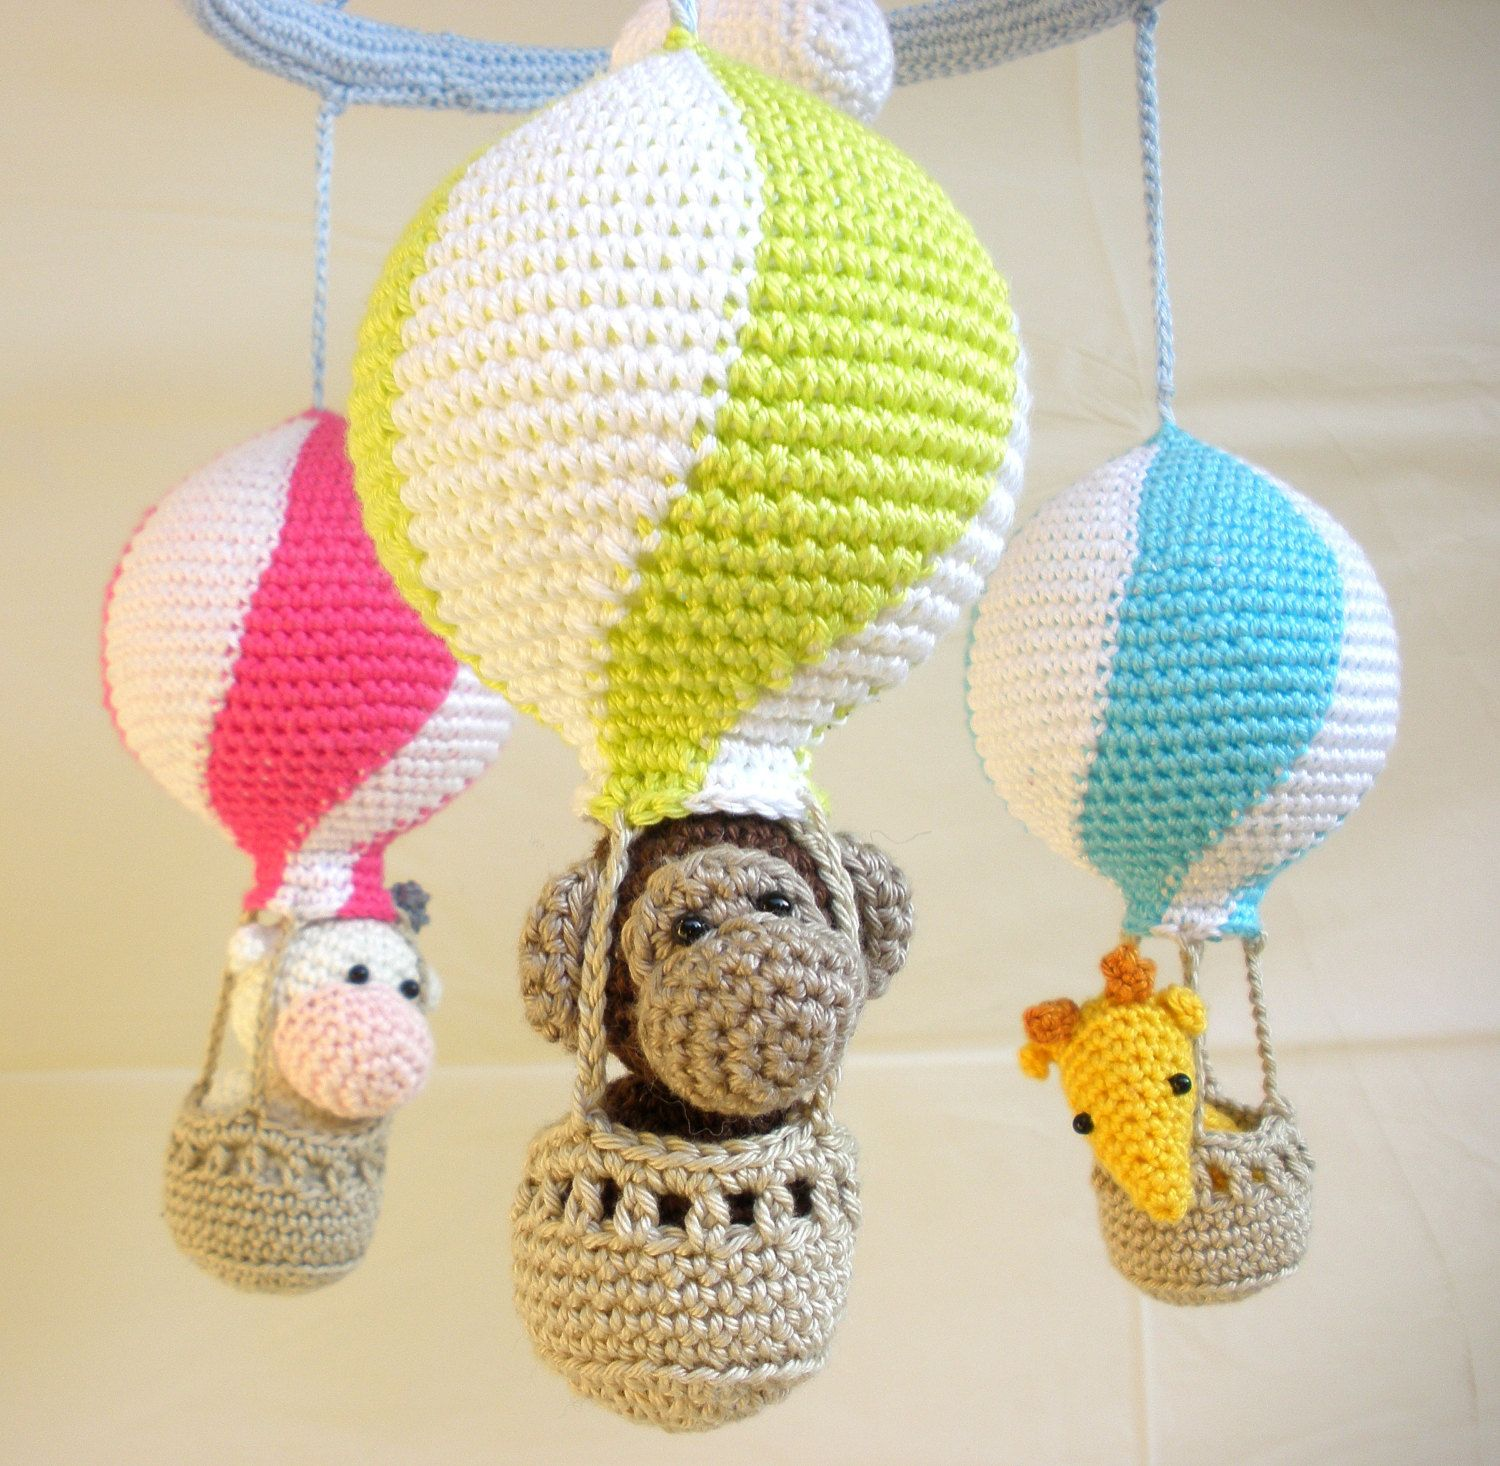 Crochet Baby Mobile Google Søk Baby Mobile Crochetrelated